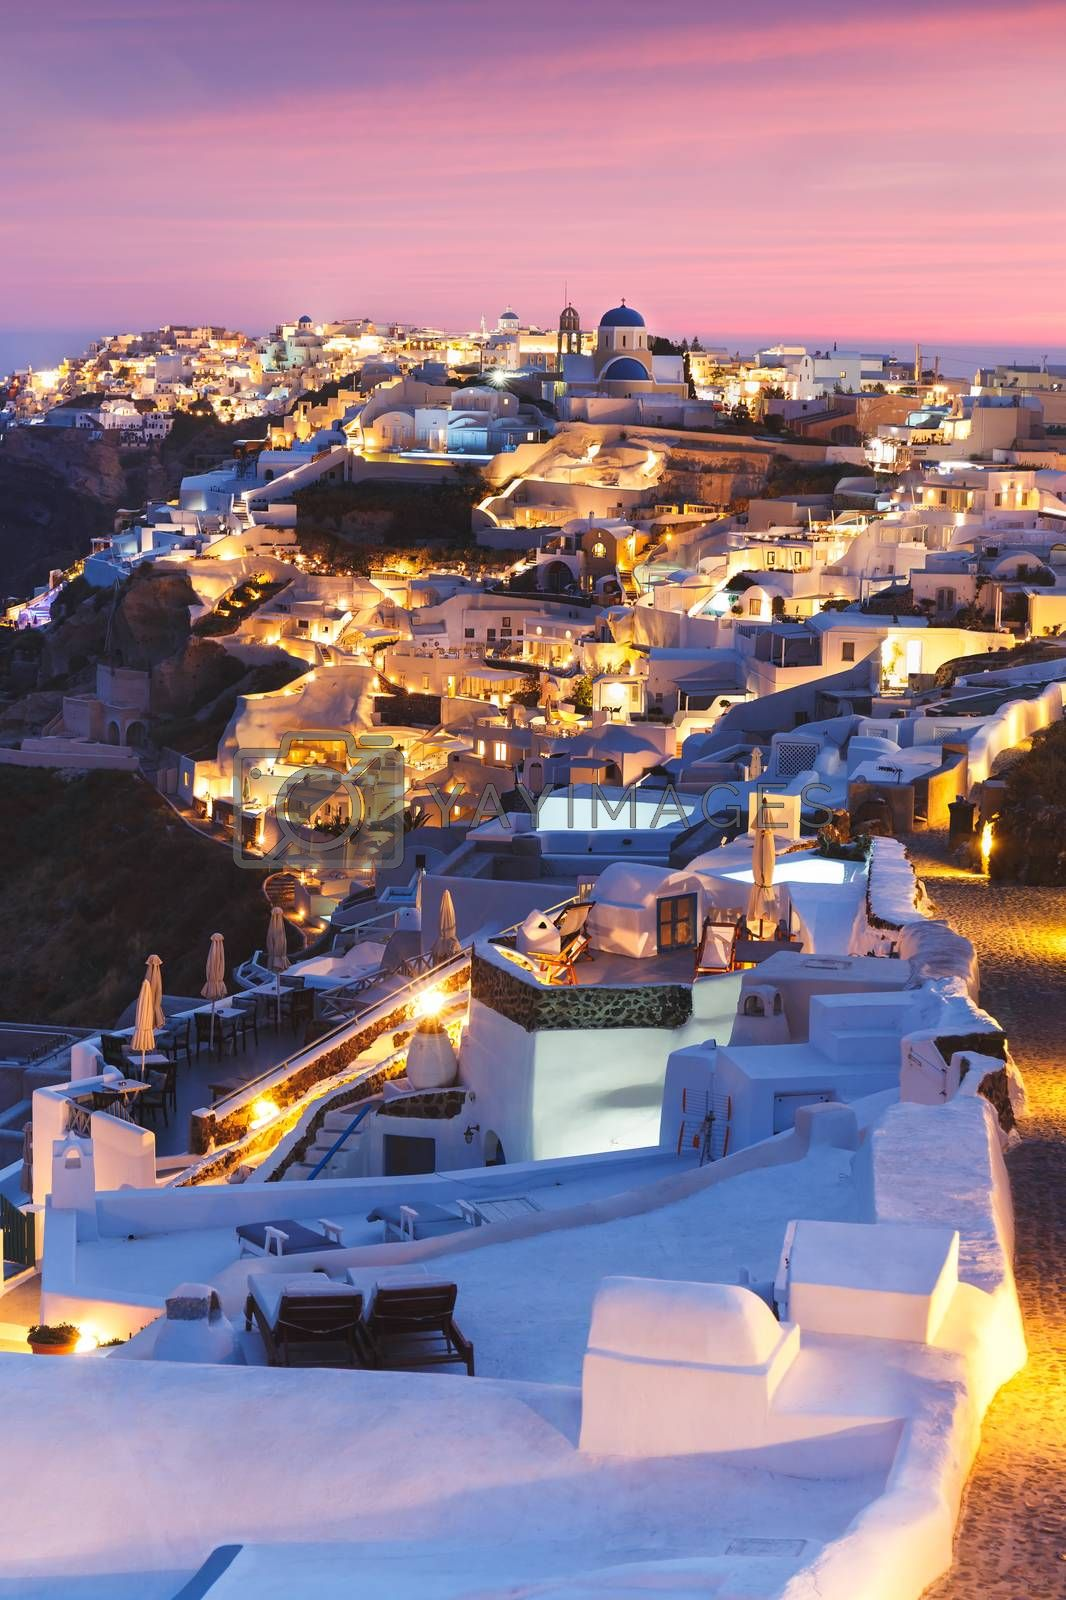 Unique view for the sunset over Oia, Santorini, a small, beautiful village on the edge of the caldera, Greece